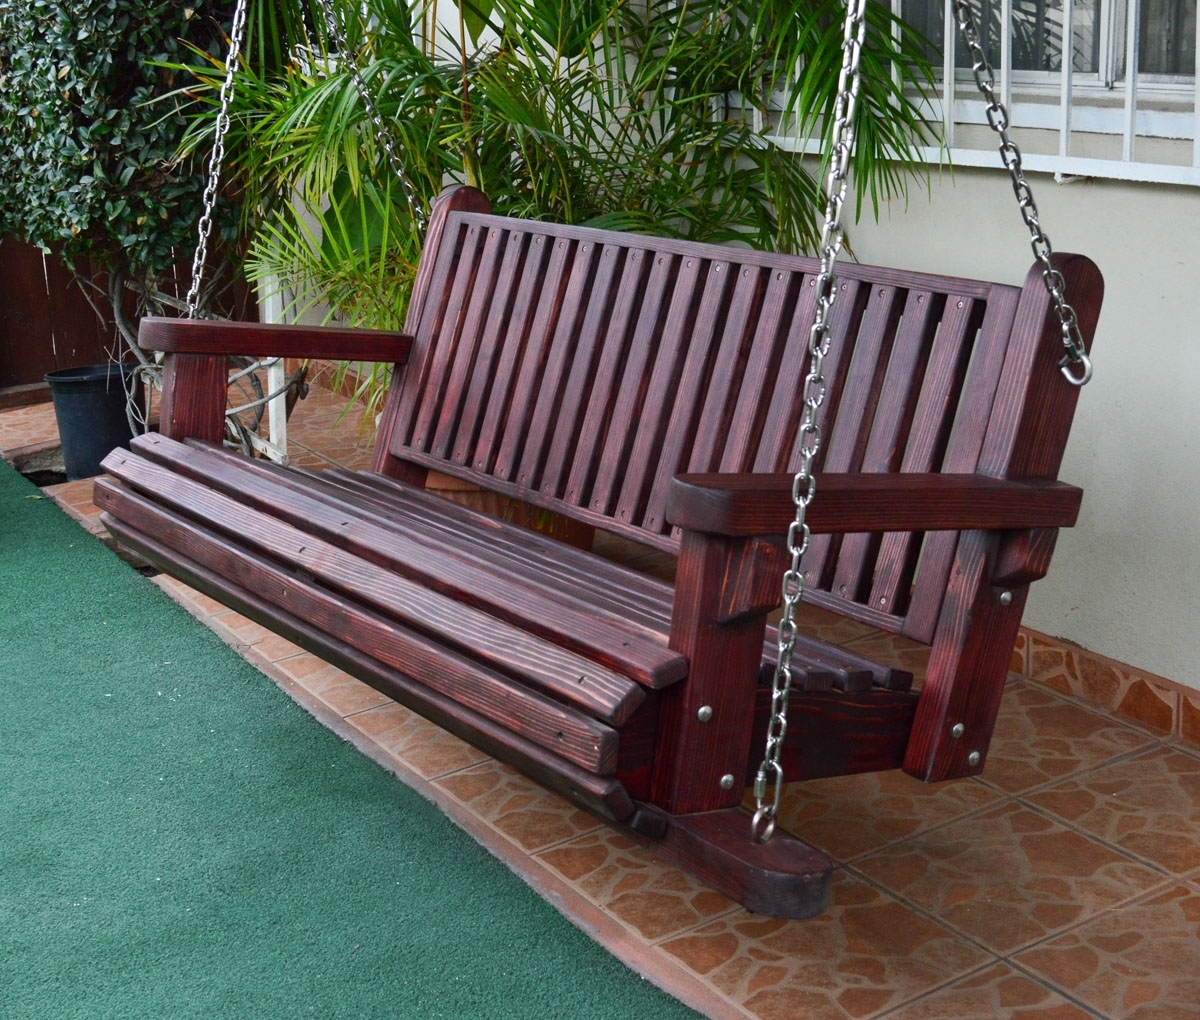 Image of: Garden Bench Swings Seat Only Built To Last Decades Forever With Regard To Wooden Garden Swing Seats Outdoor Furniture Fun Wooden Garden Swing Seats Outdoor Furniture